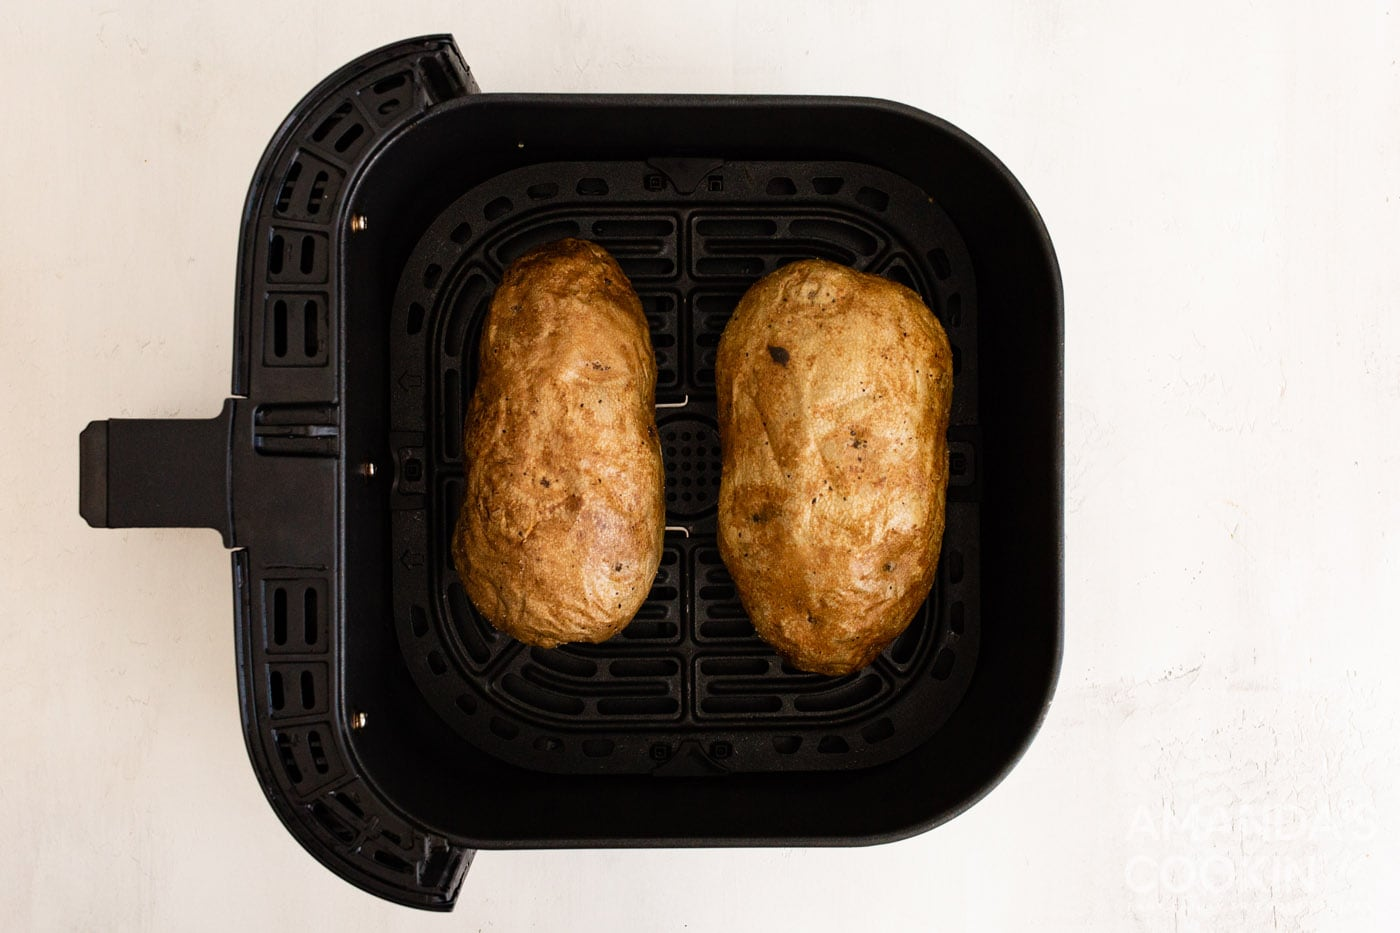 cooked russet potatoes in air fryer basket